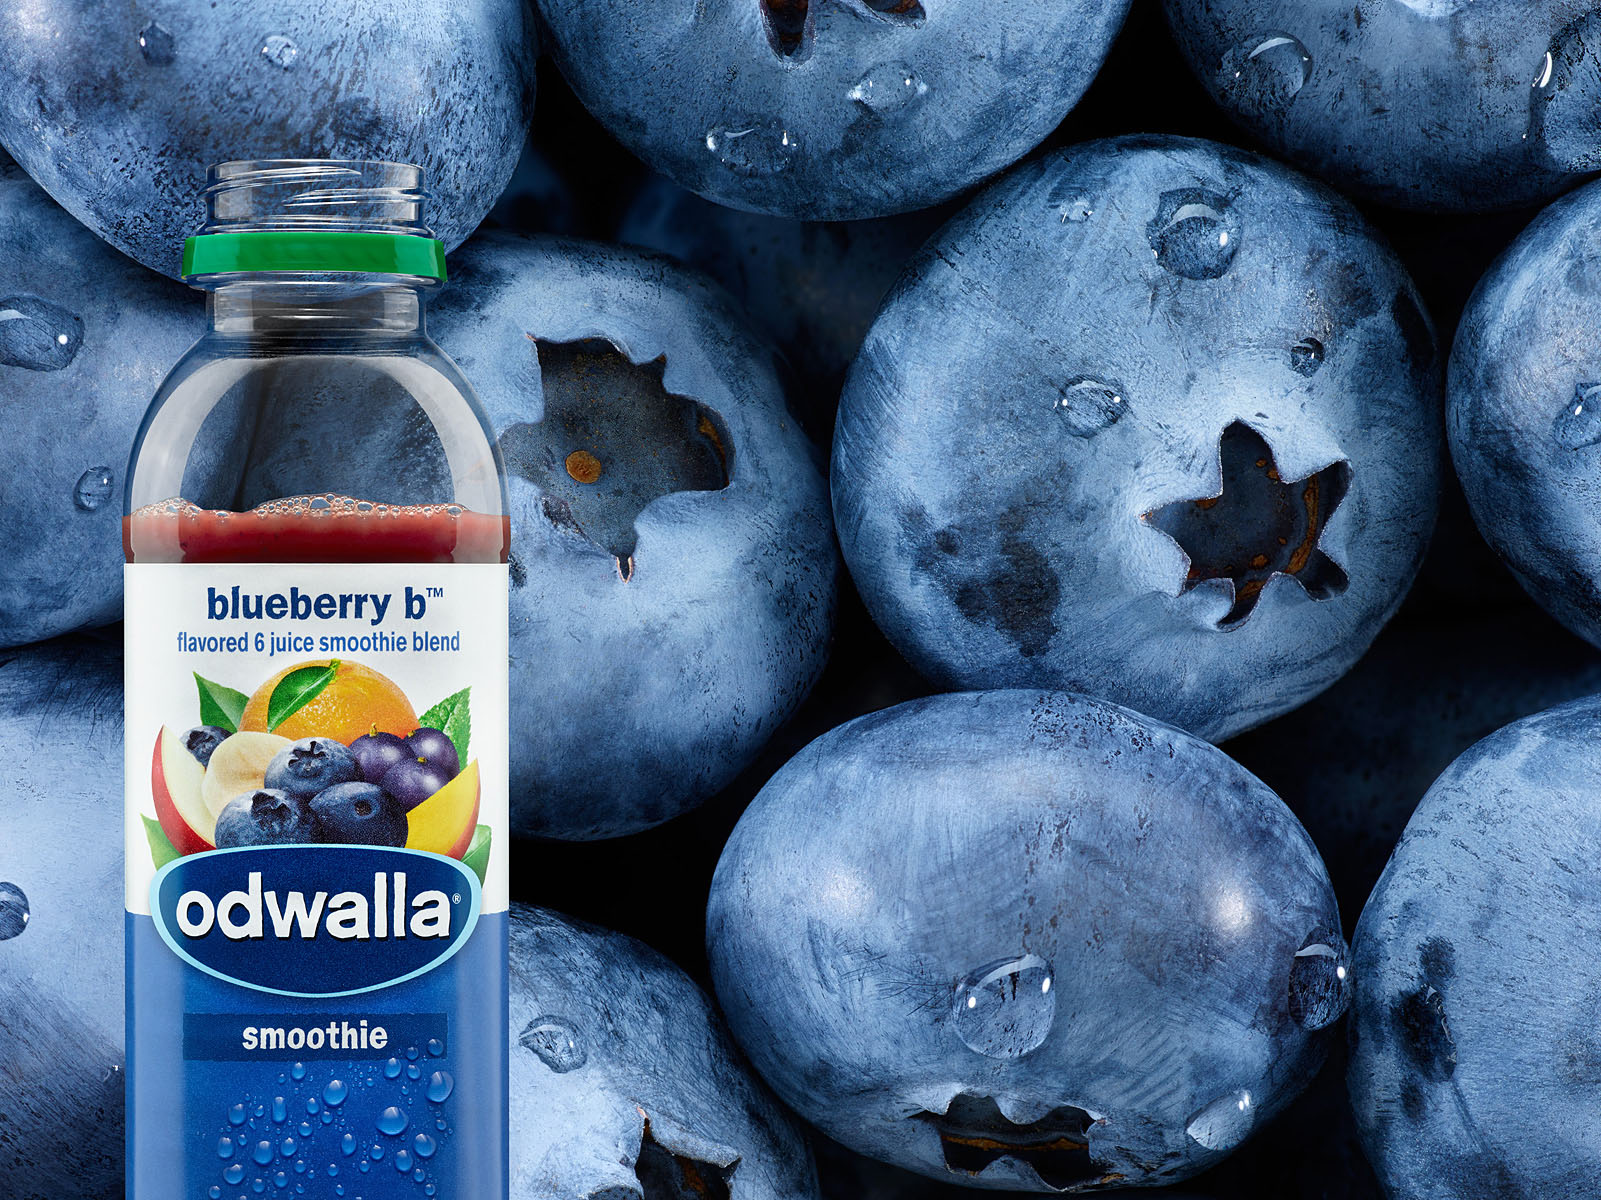 Odwalla_15oz_BlueberryB_01_Droplets_Final-crop-small